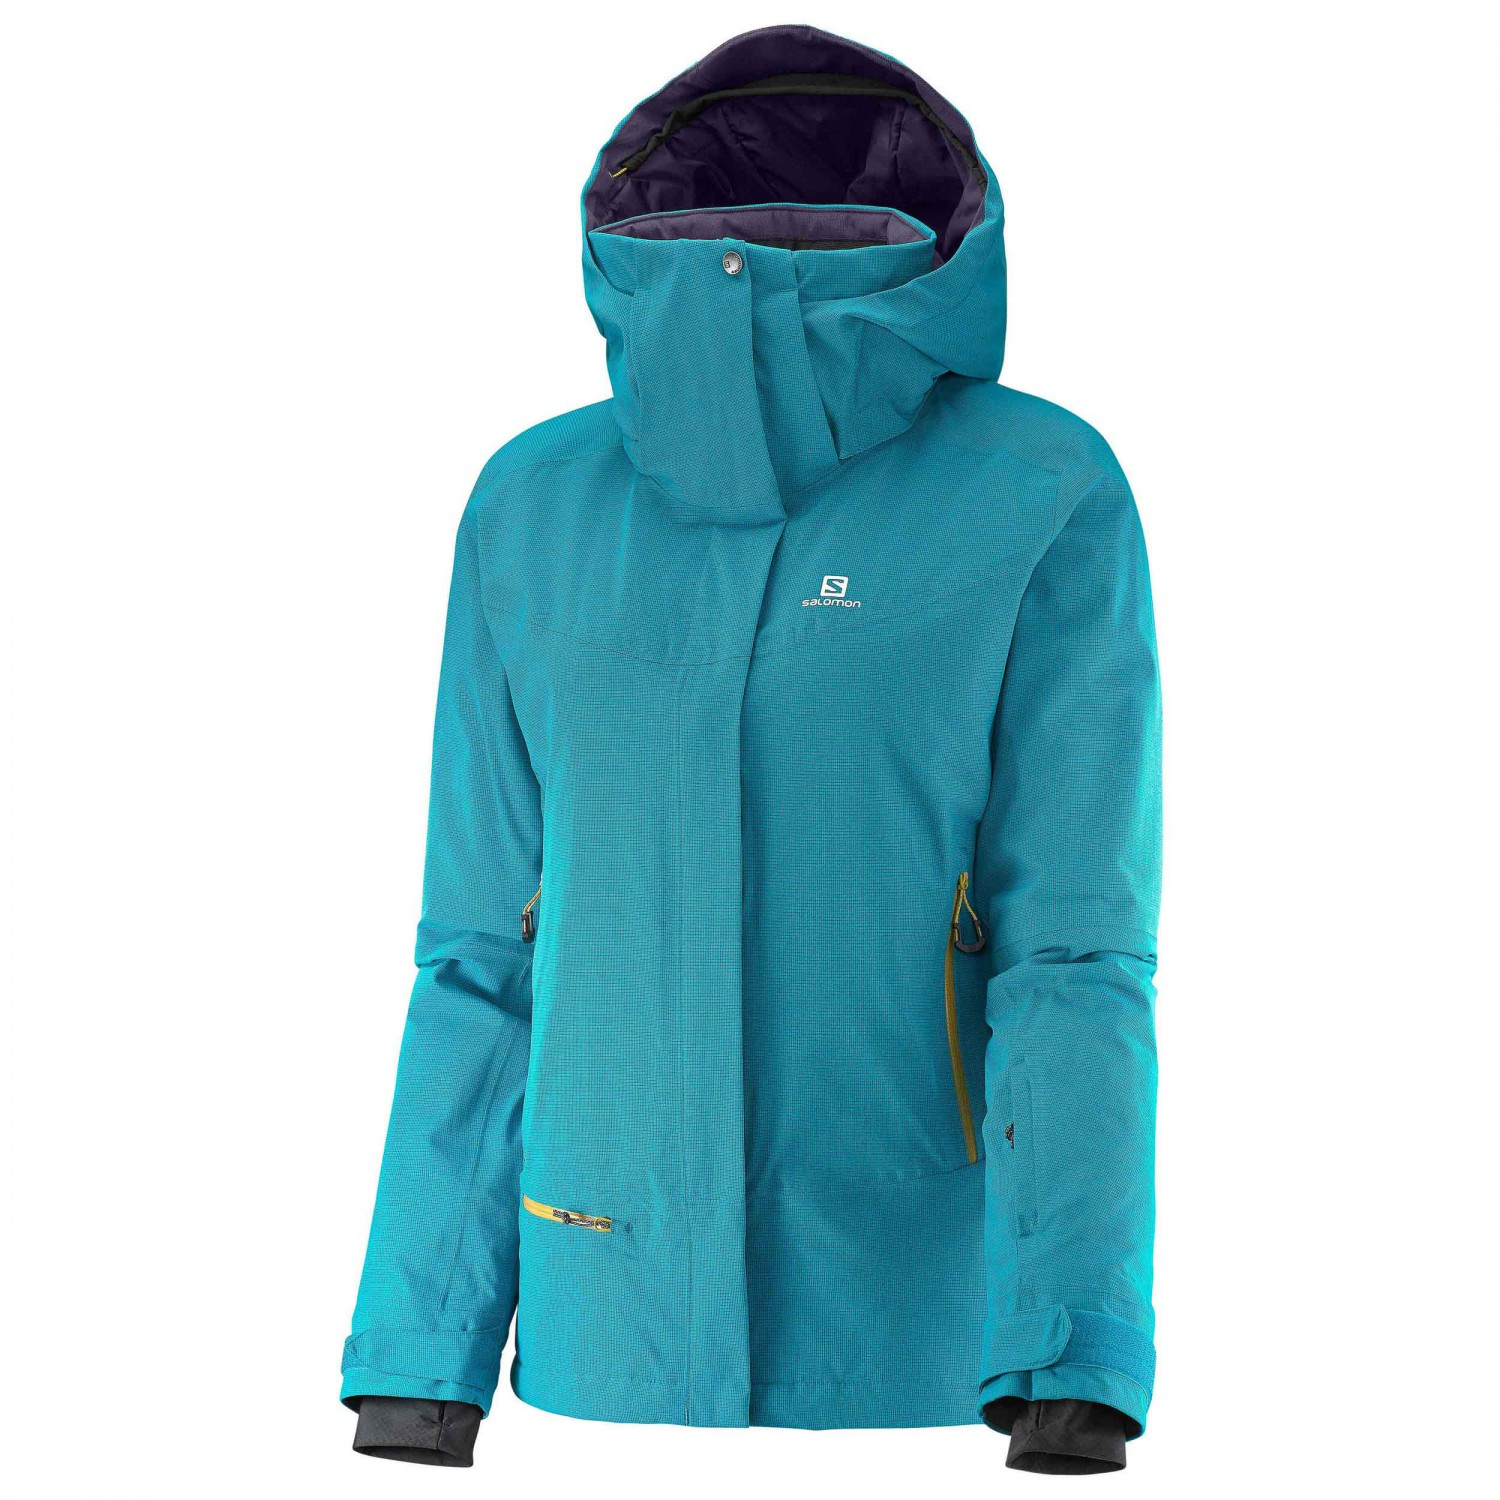 Salomon - Women s QST Snow Jacket - Ski jacket 8440455bc